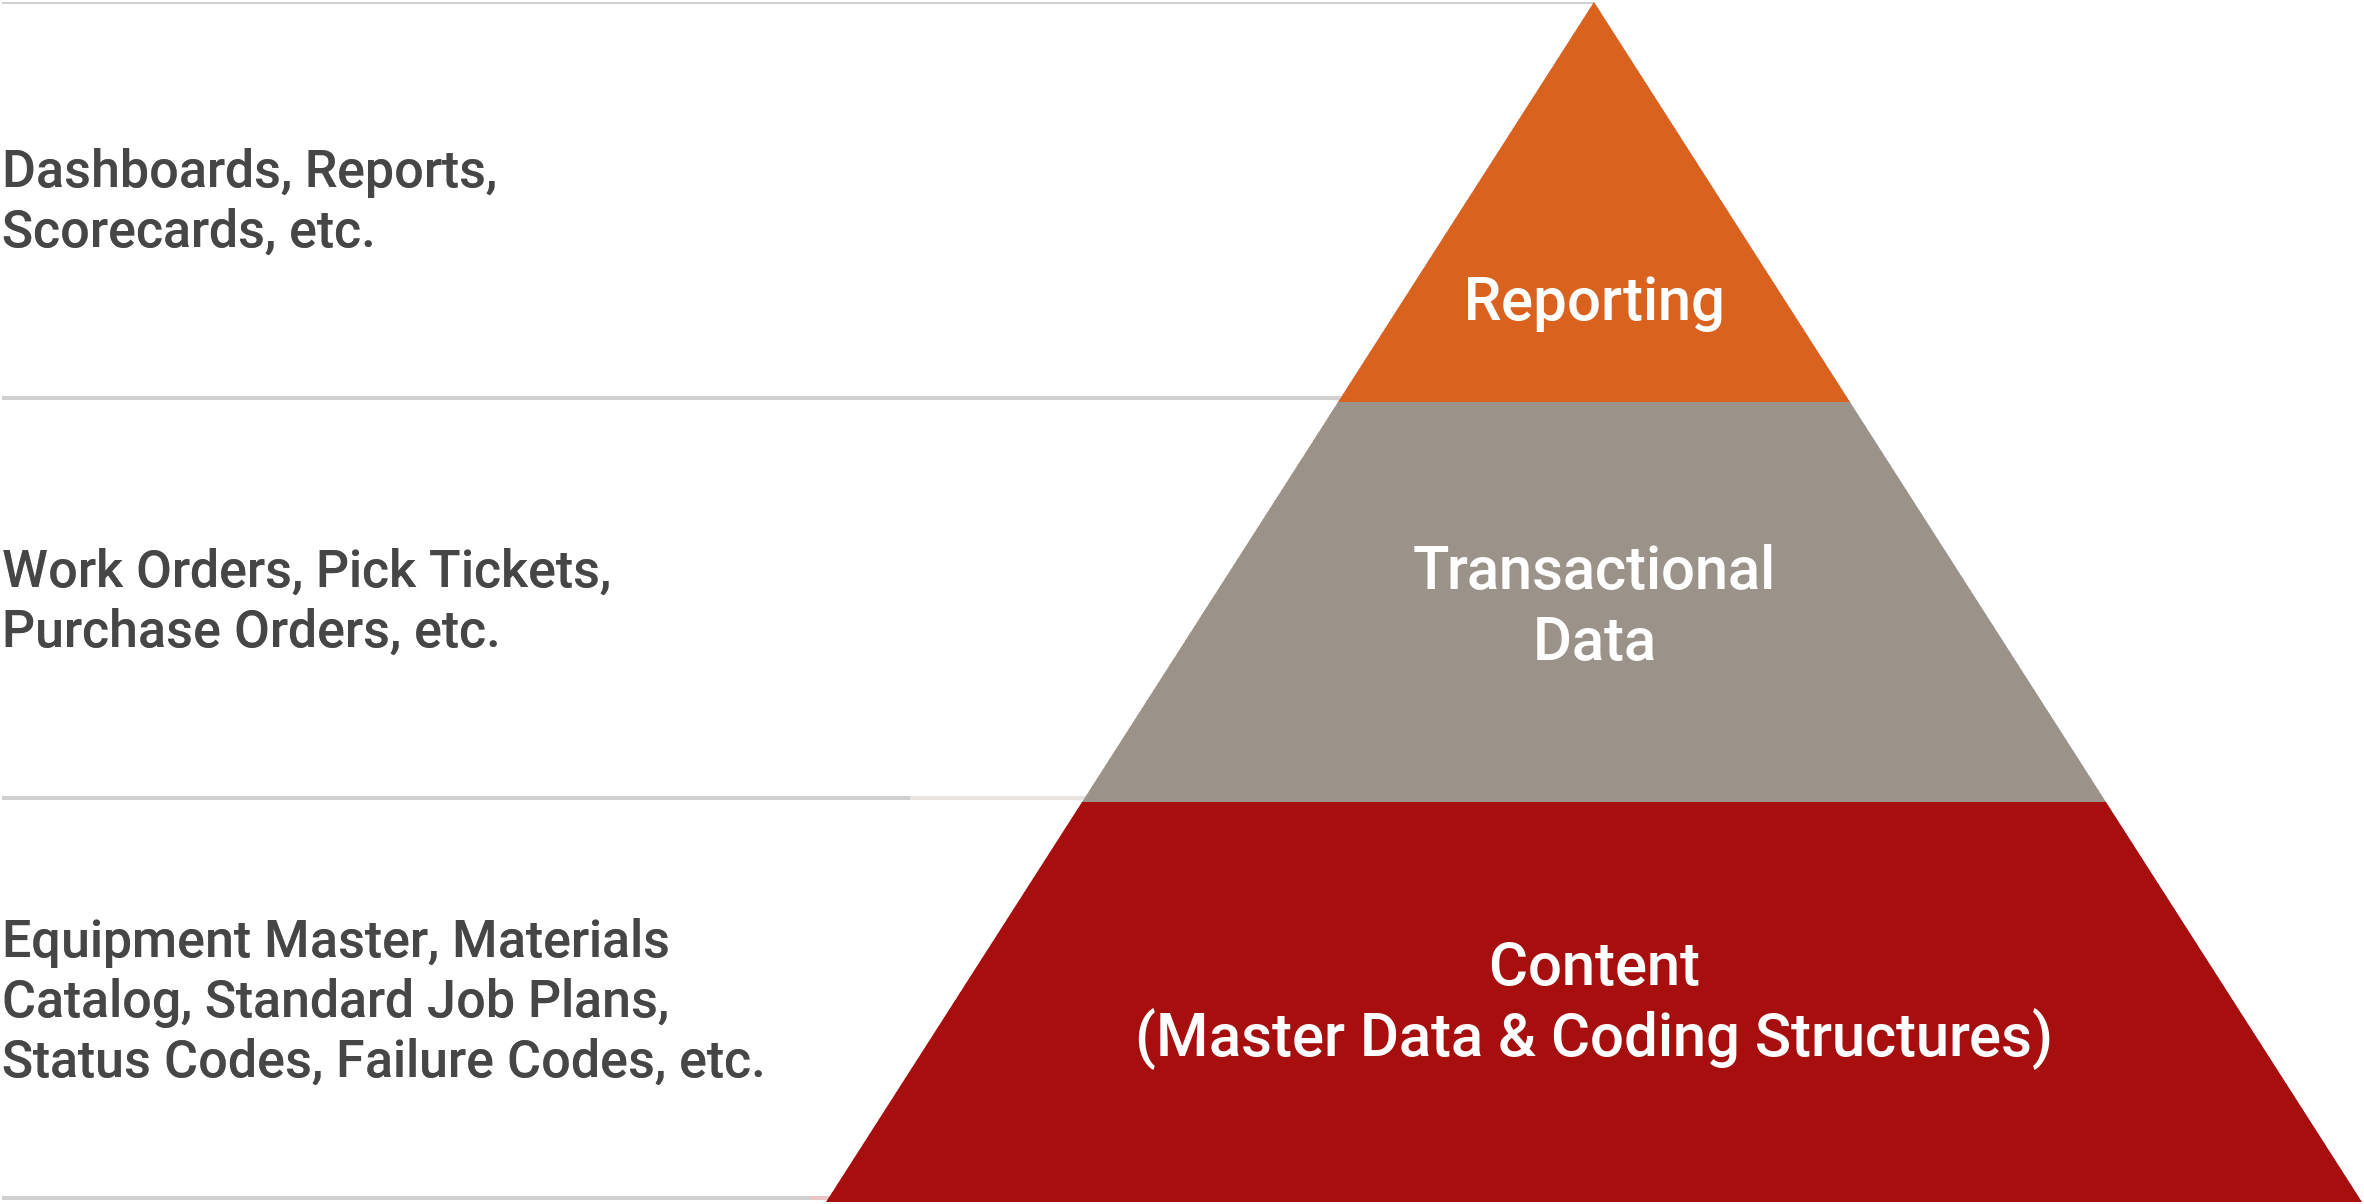 Content Triangle